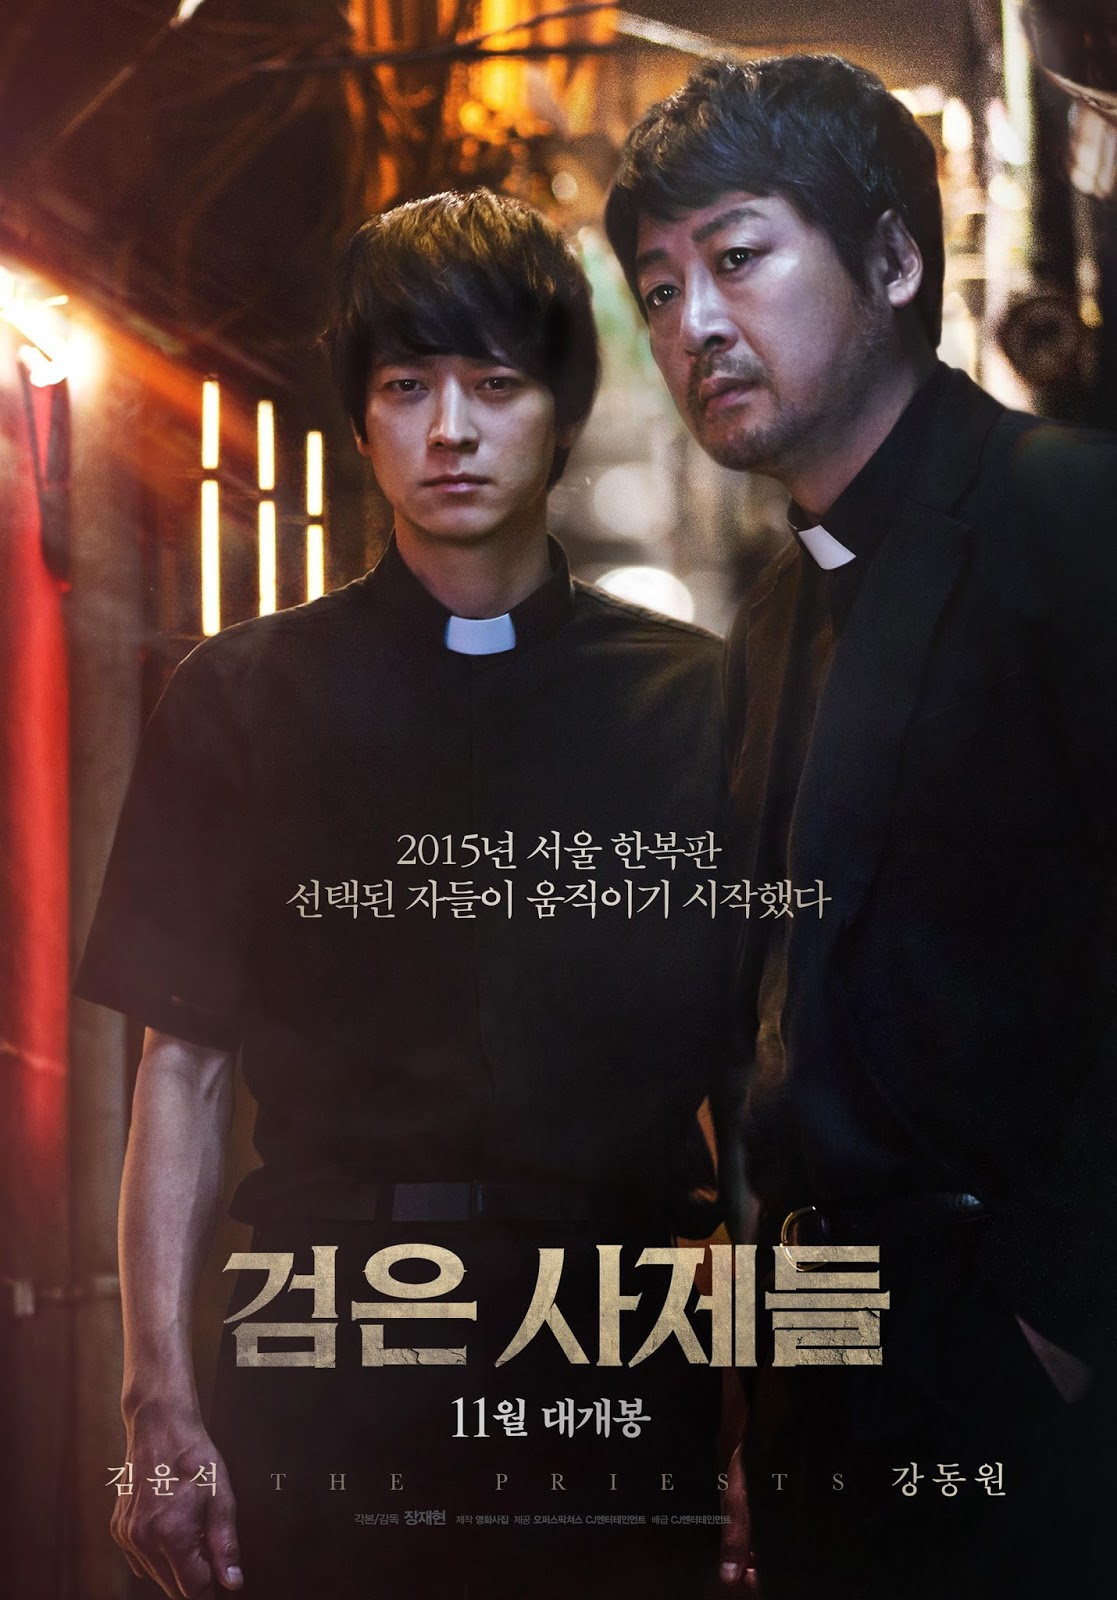 The%2BPriests%2B2015%2BKorean%2BMovie.jp